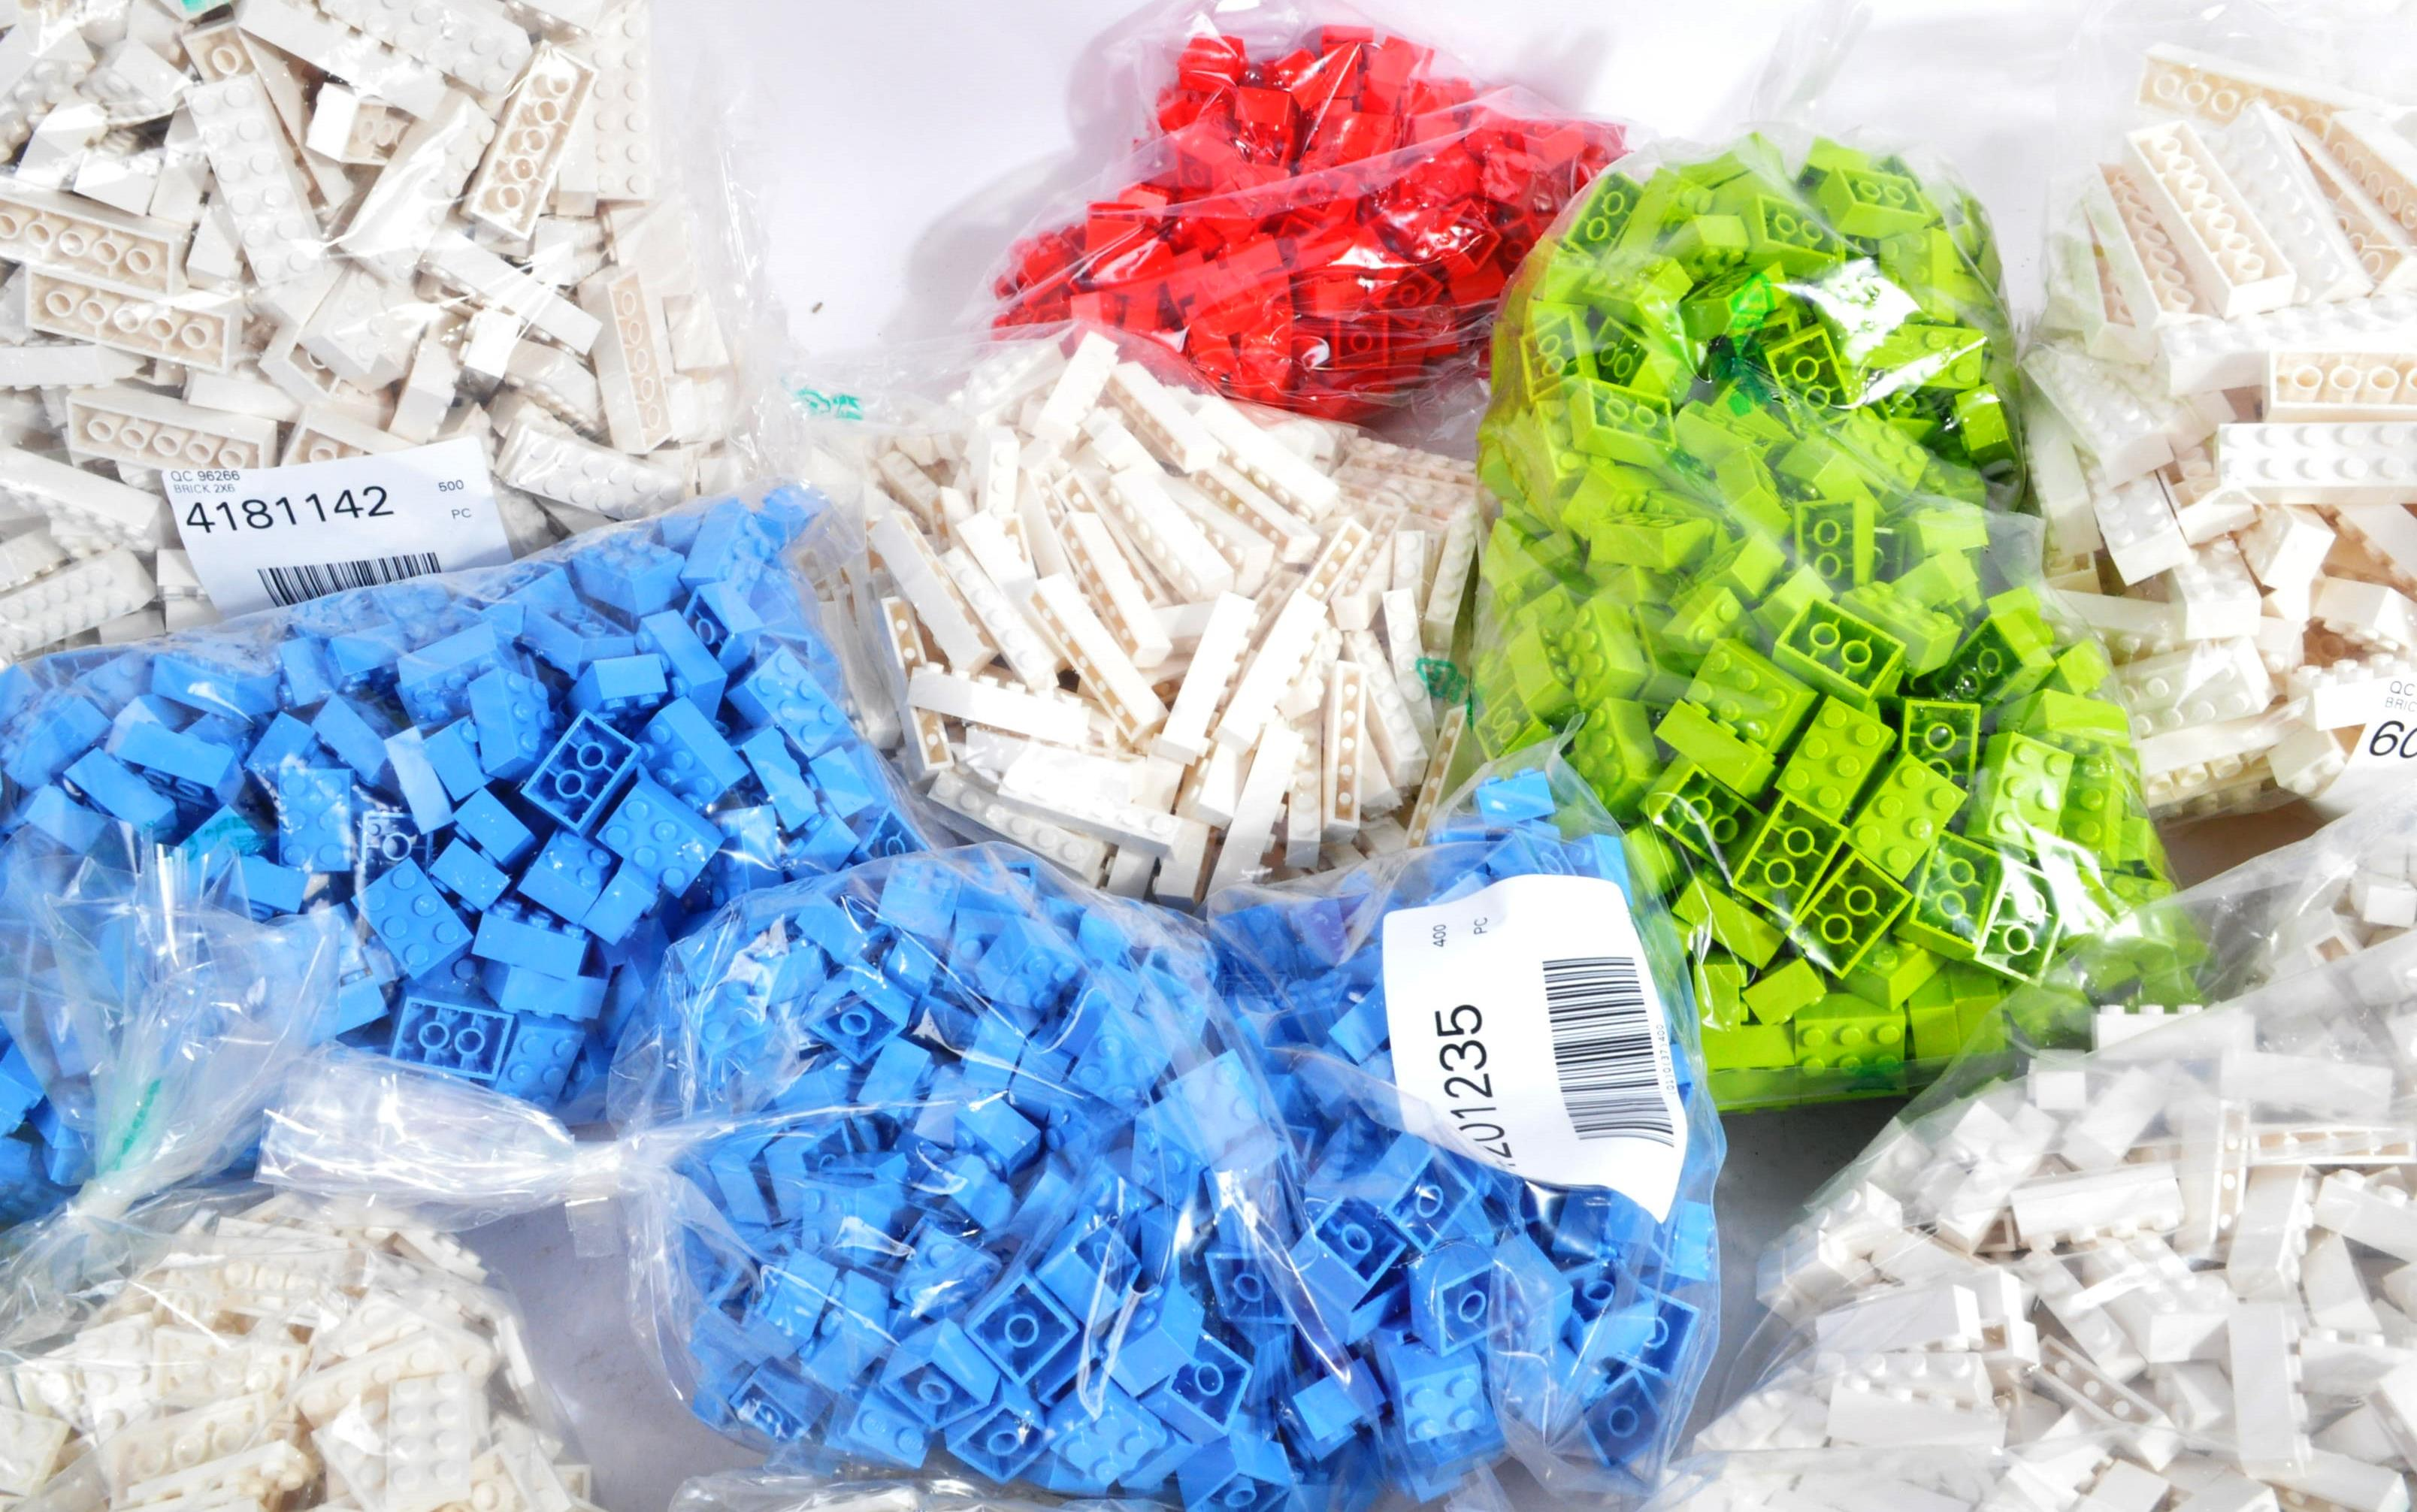 LEGO - LARGE COLLECTION OF BRAND NEW LEGO BUILDING BLOCKS - Image 4 of 6